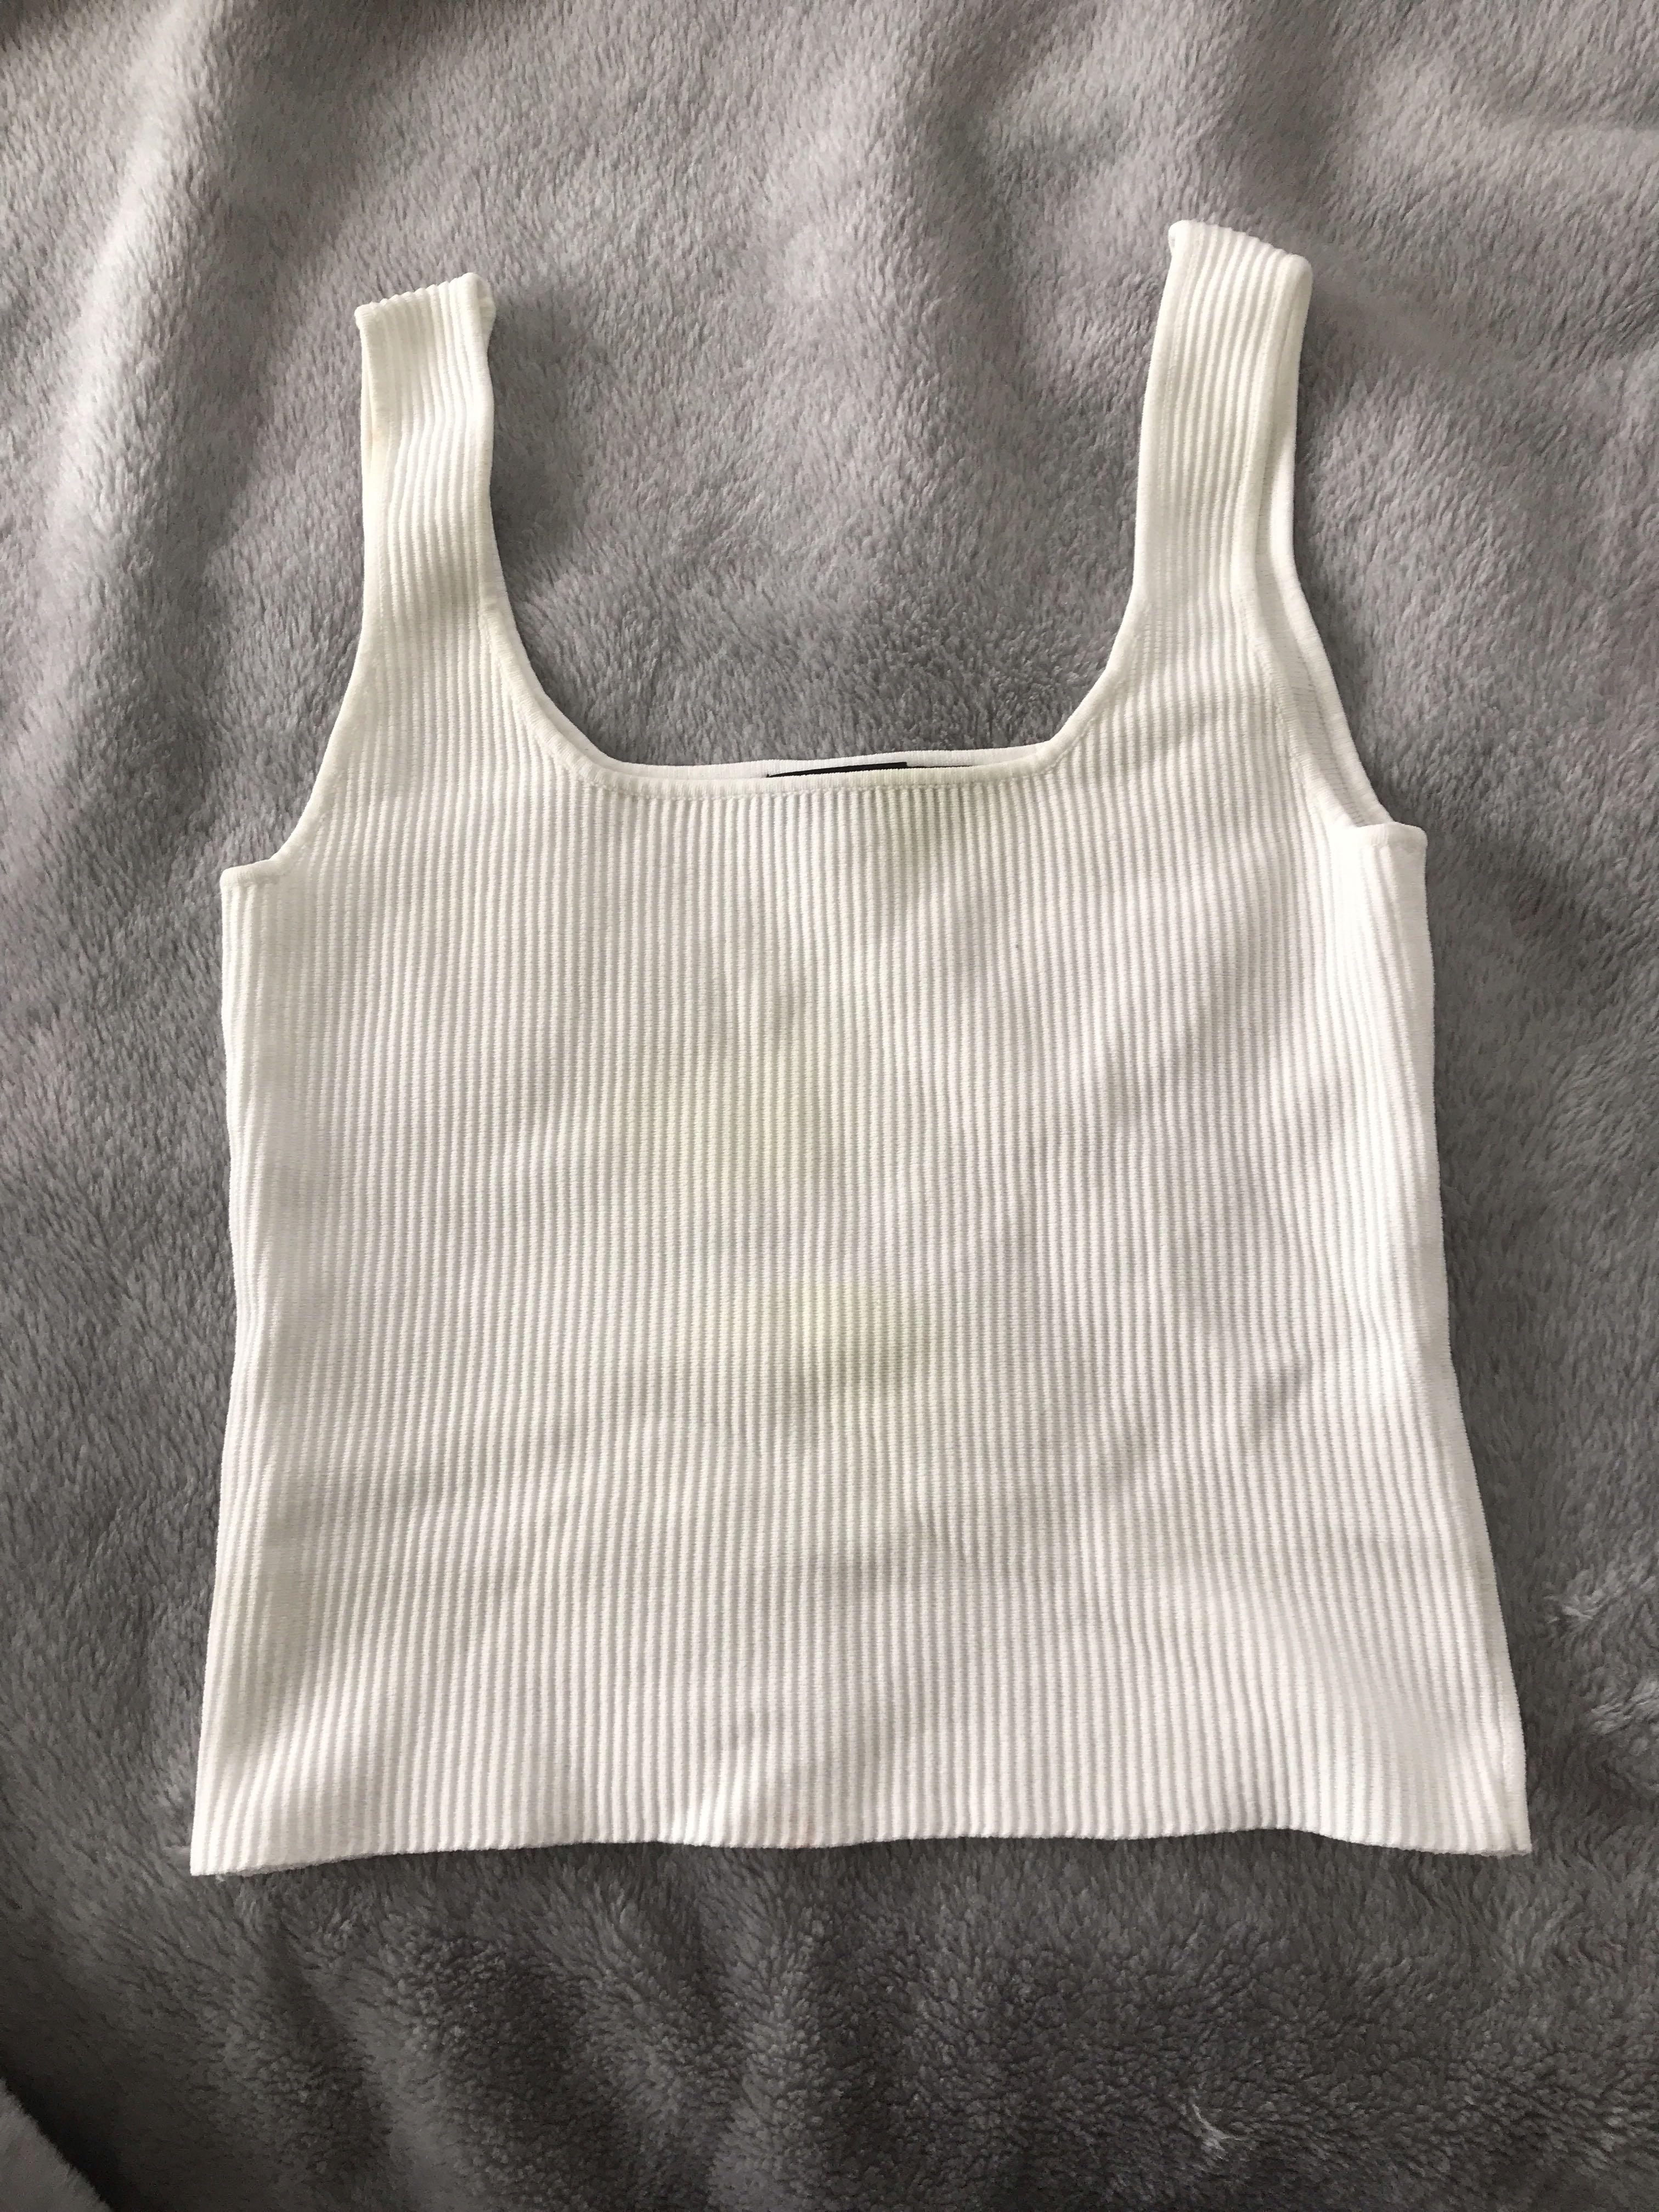 Glassons white tank top size small